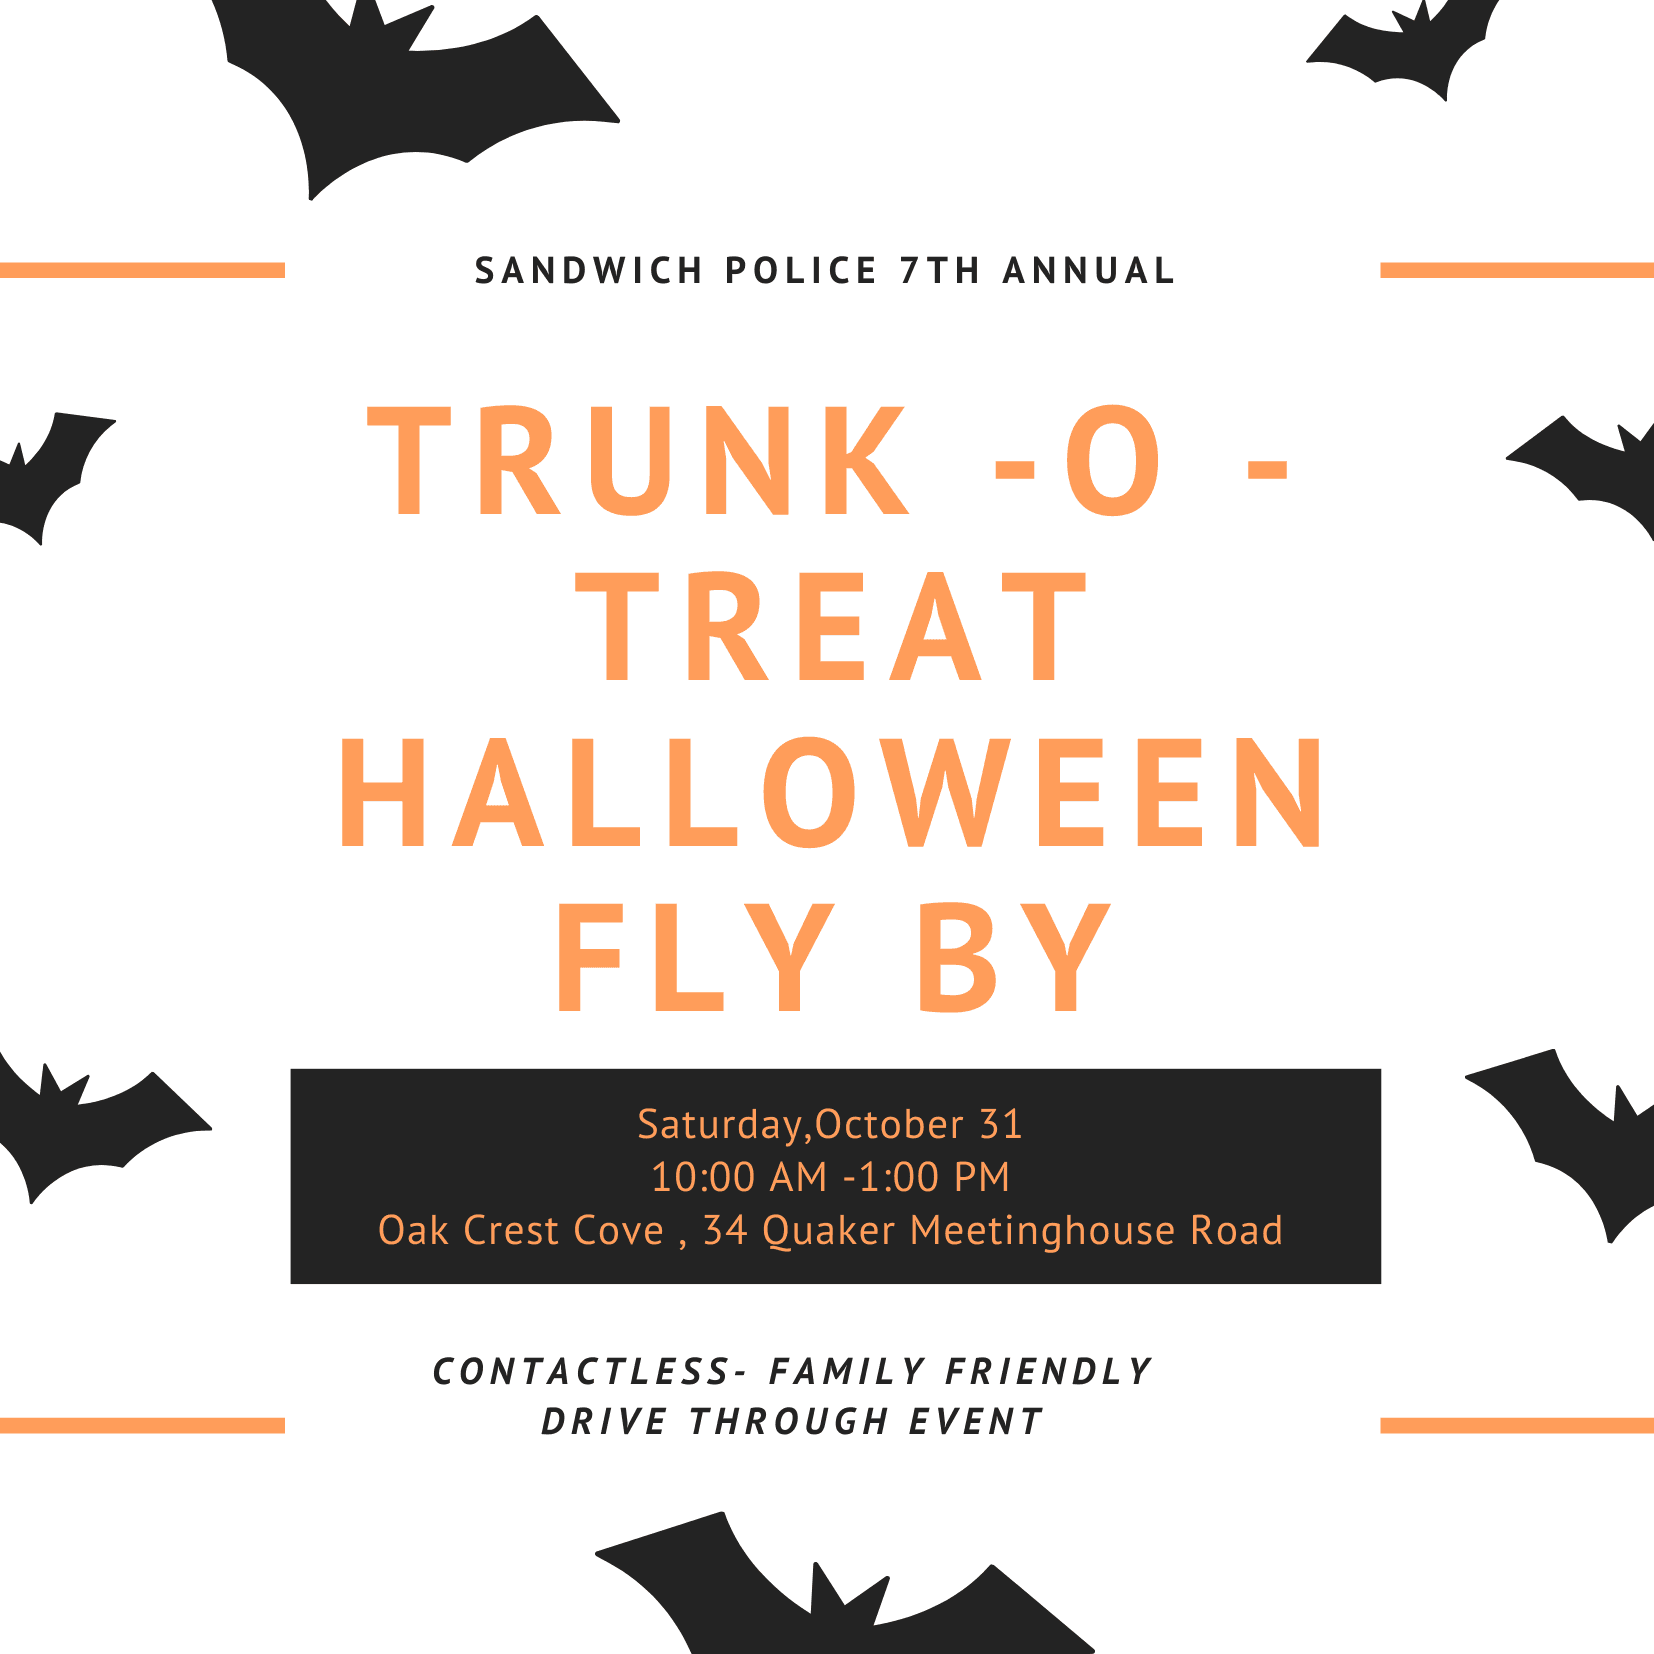 Trunk o treat Fly By 2020 page 1